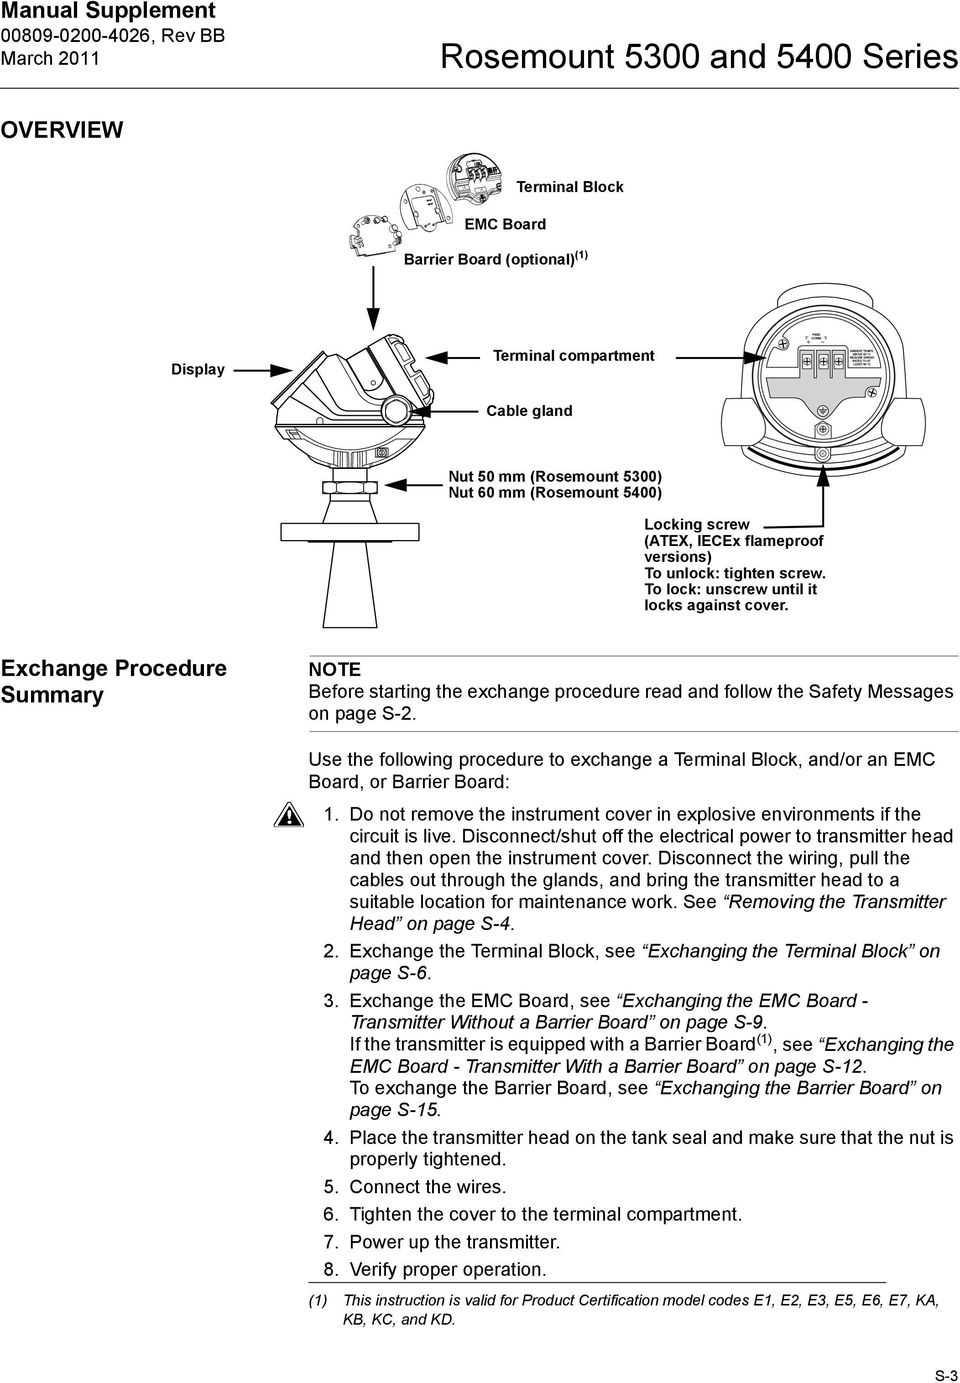 Exchange Procedure Summary NOTE Before starting the exchange procedure read and follow the Safety Messages on page S-2.